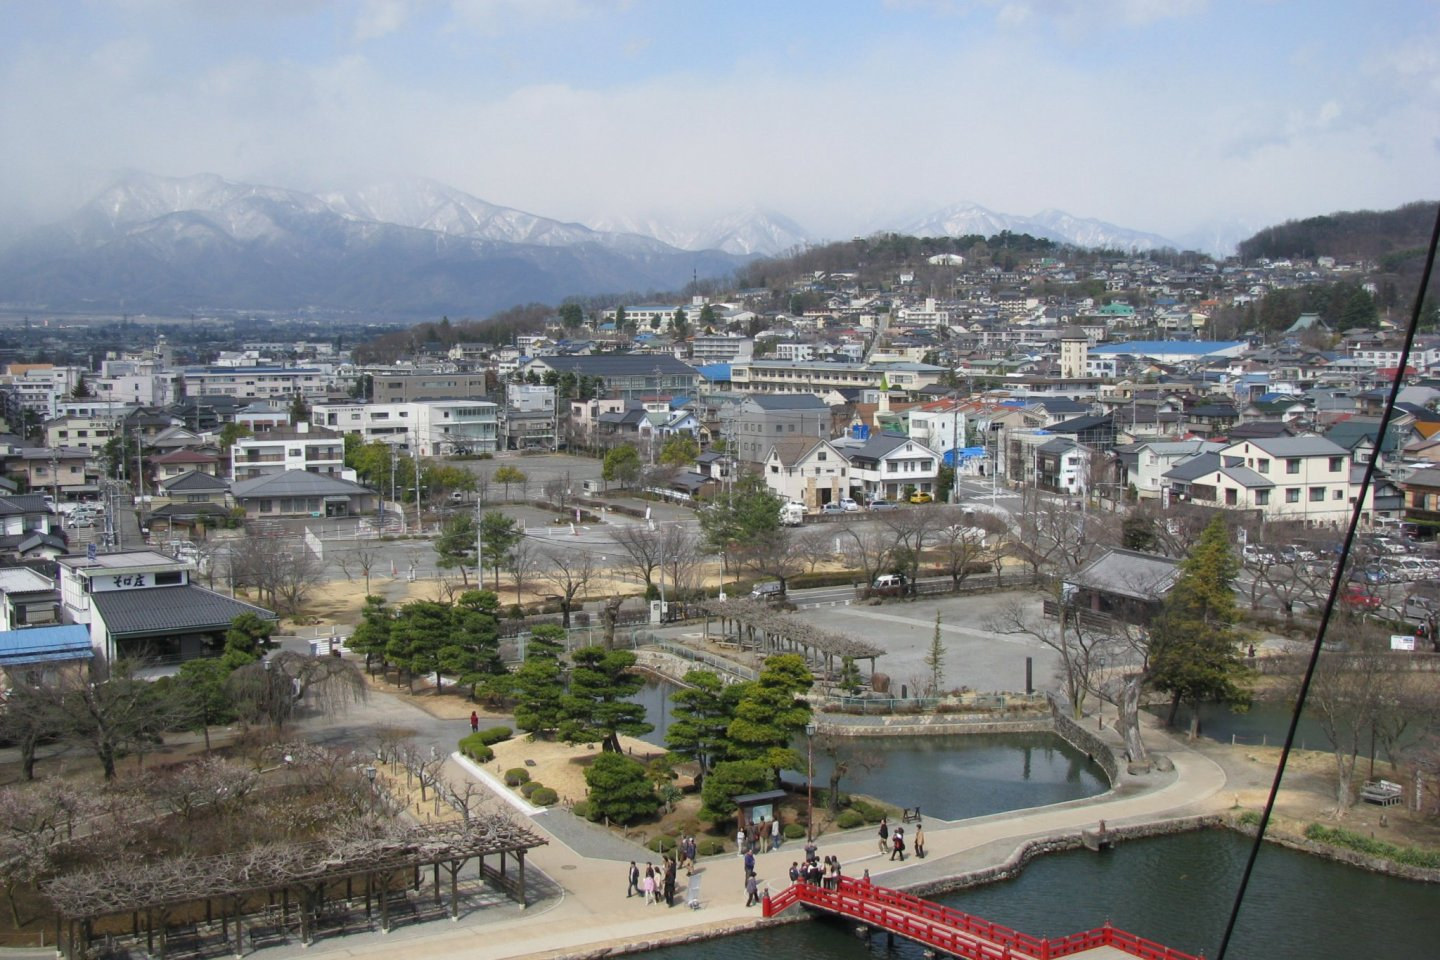 The view of Matsumoto